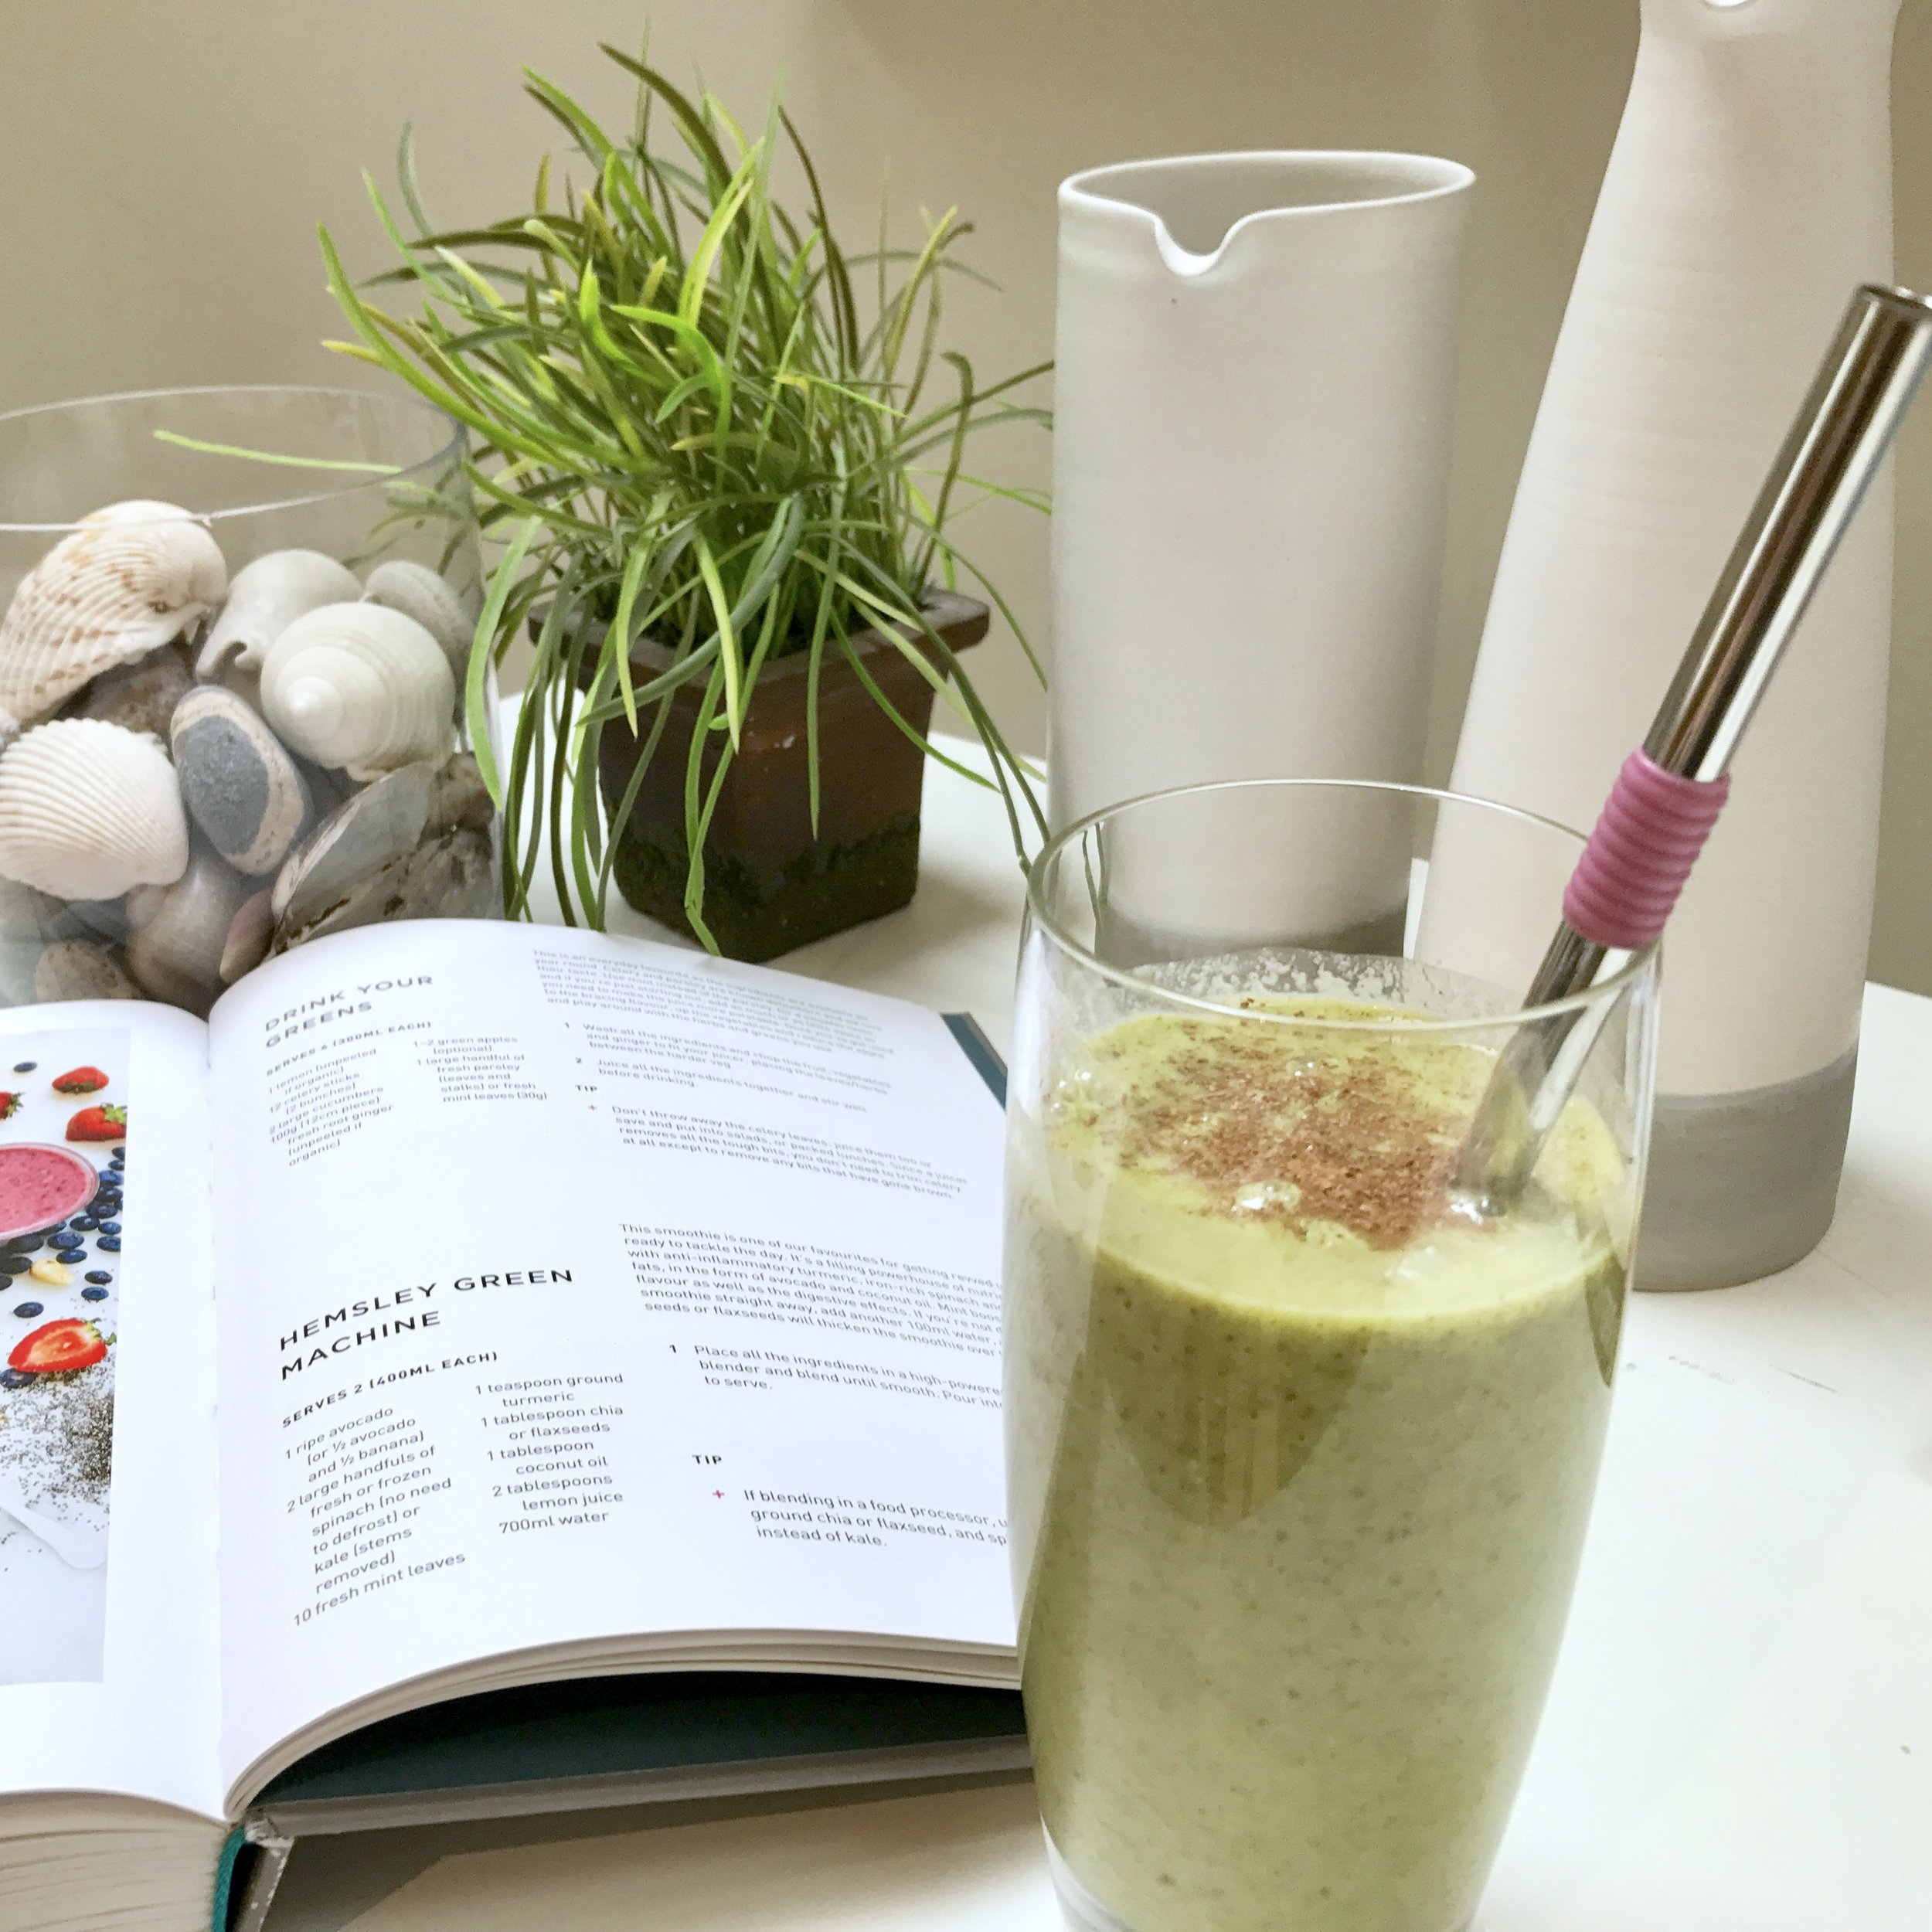 The Hemsley Green Machine smoothie, with avocados, kale, mint and other healthy goodness